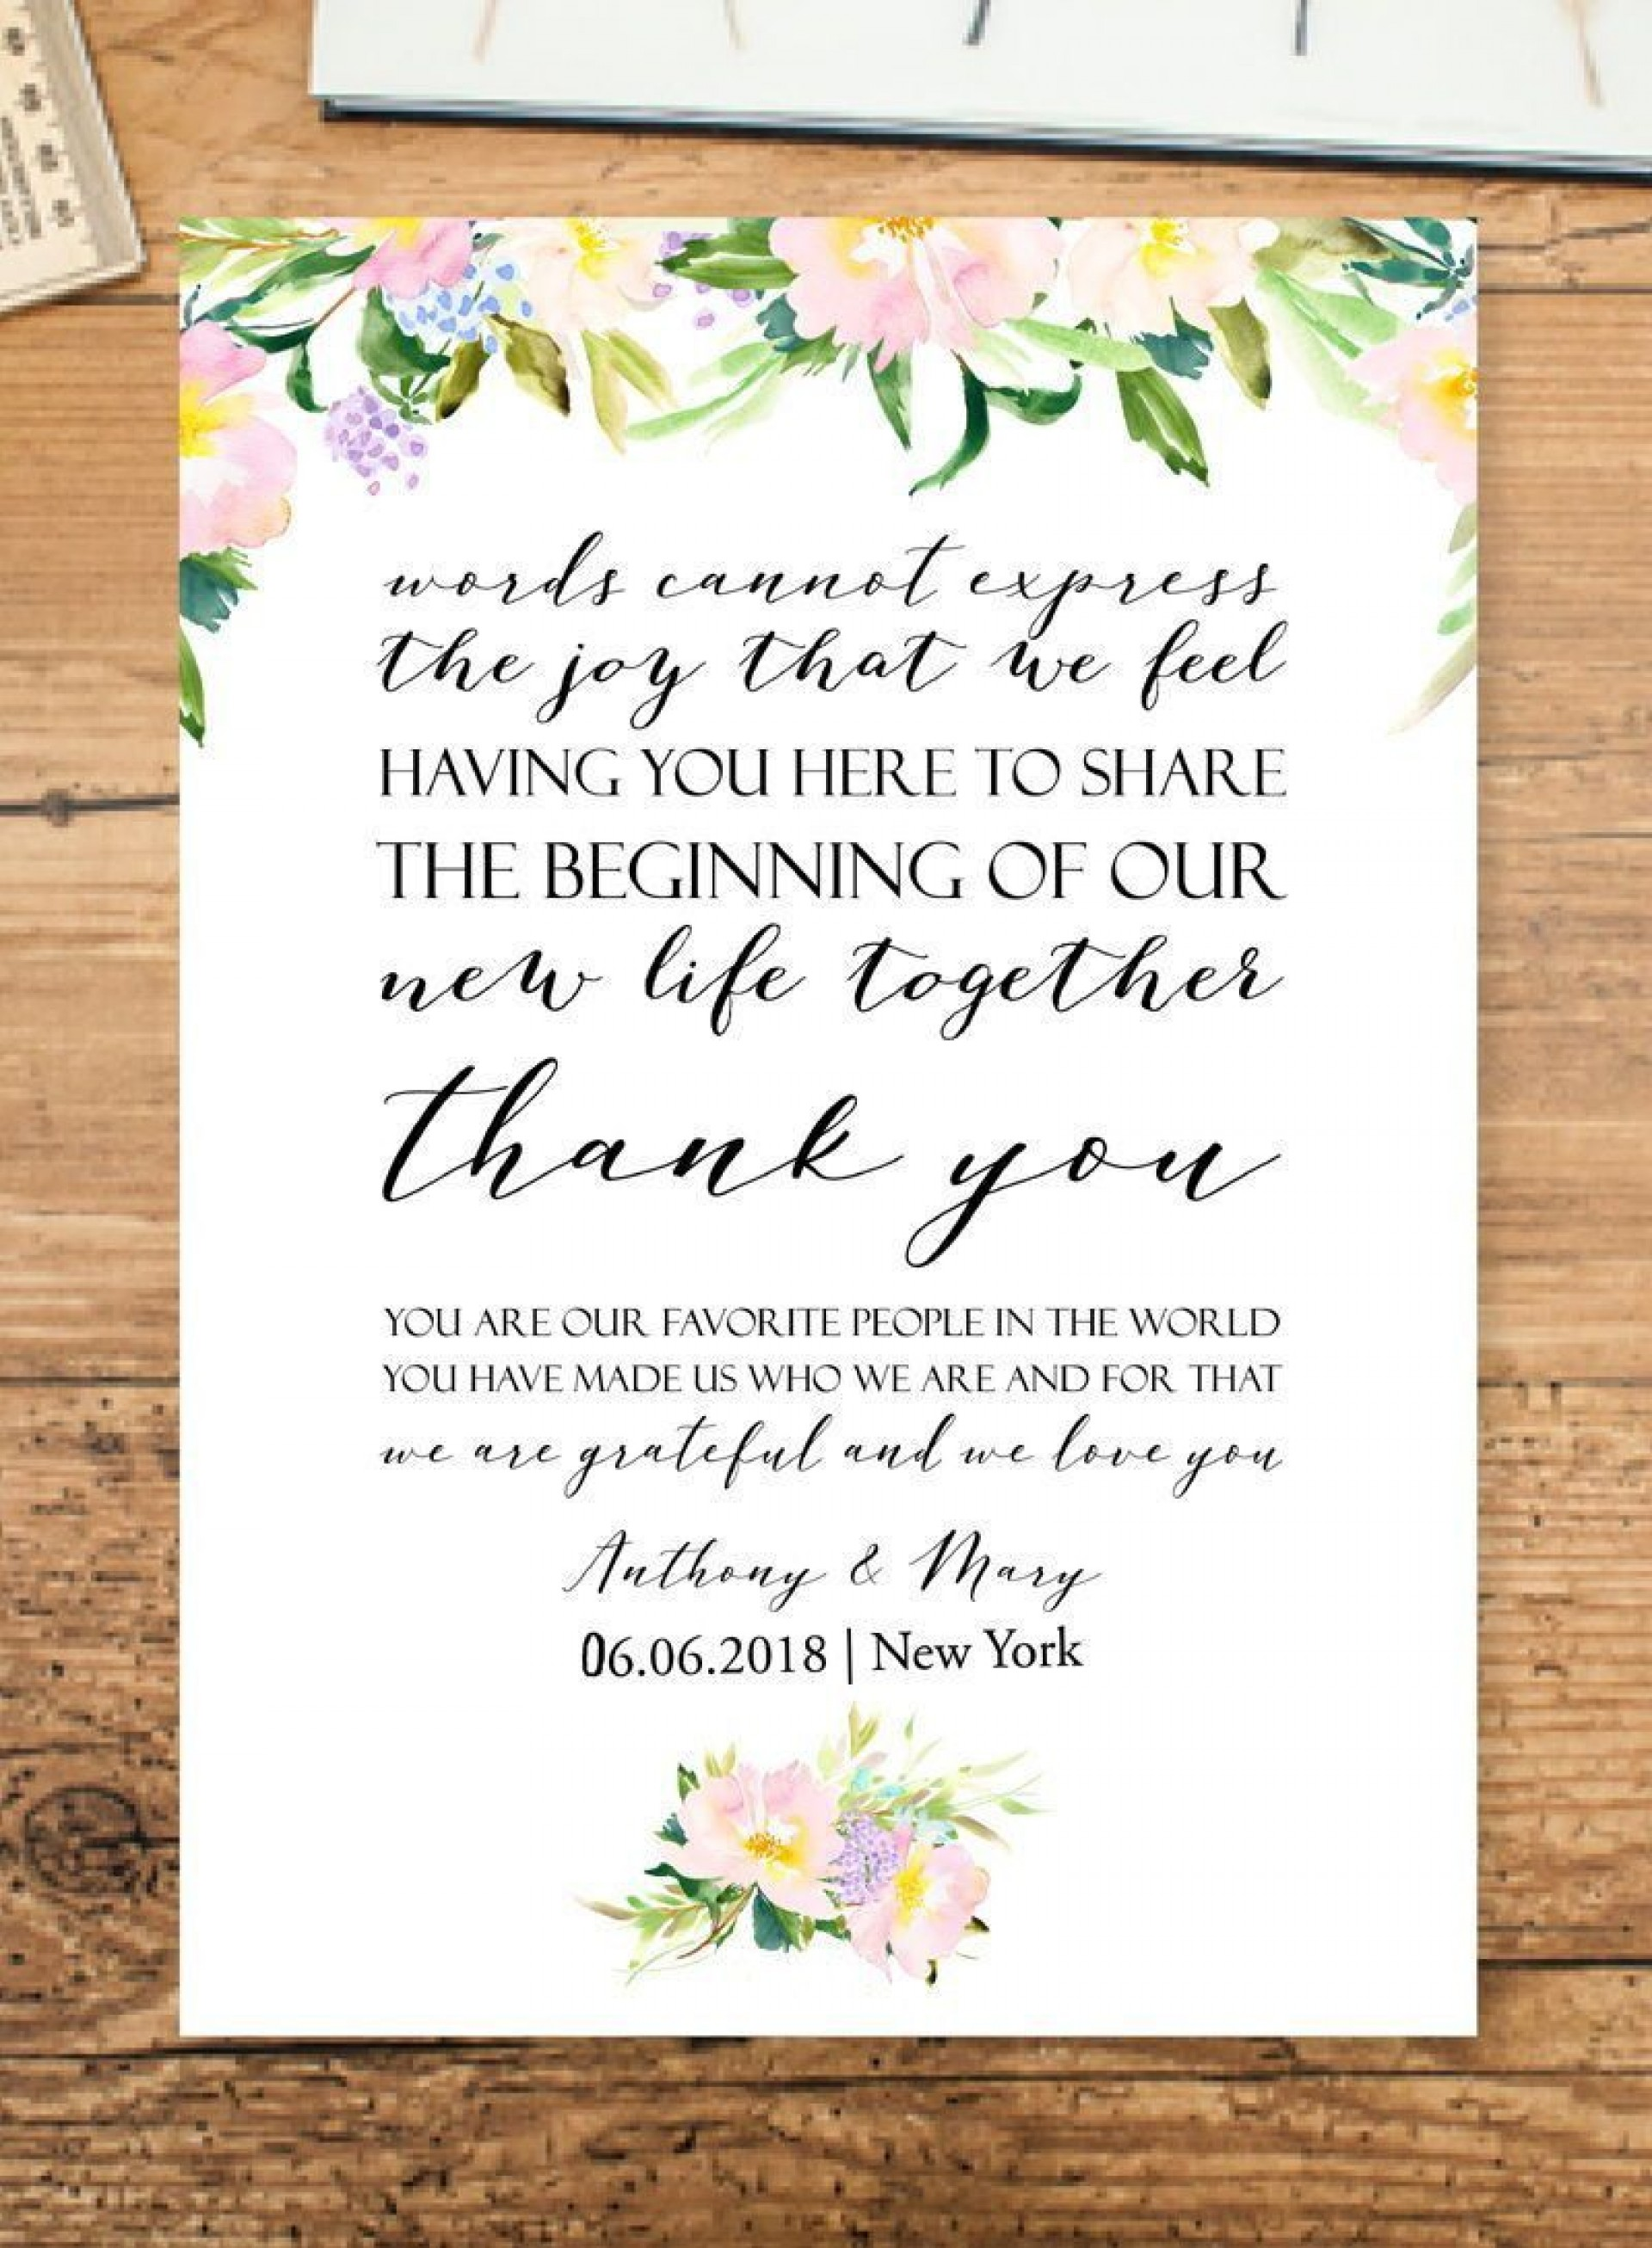 004 Striking Wedding Welcome Letter Template Word Concept 1920